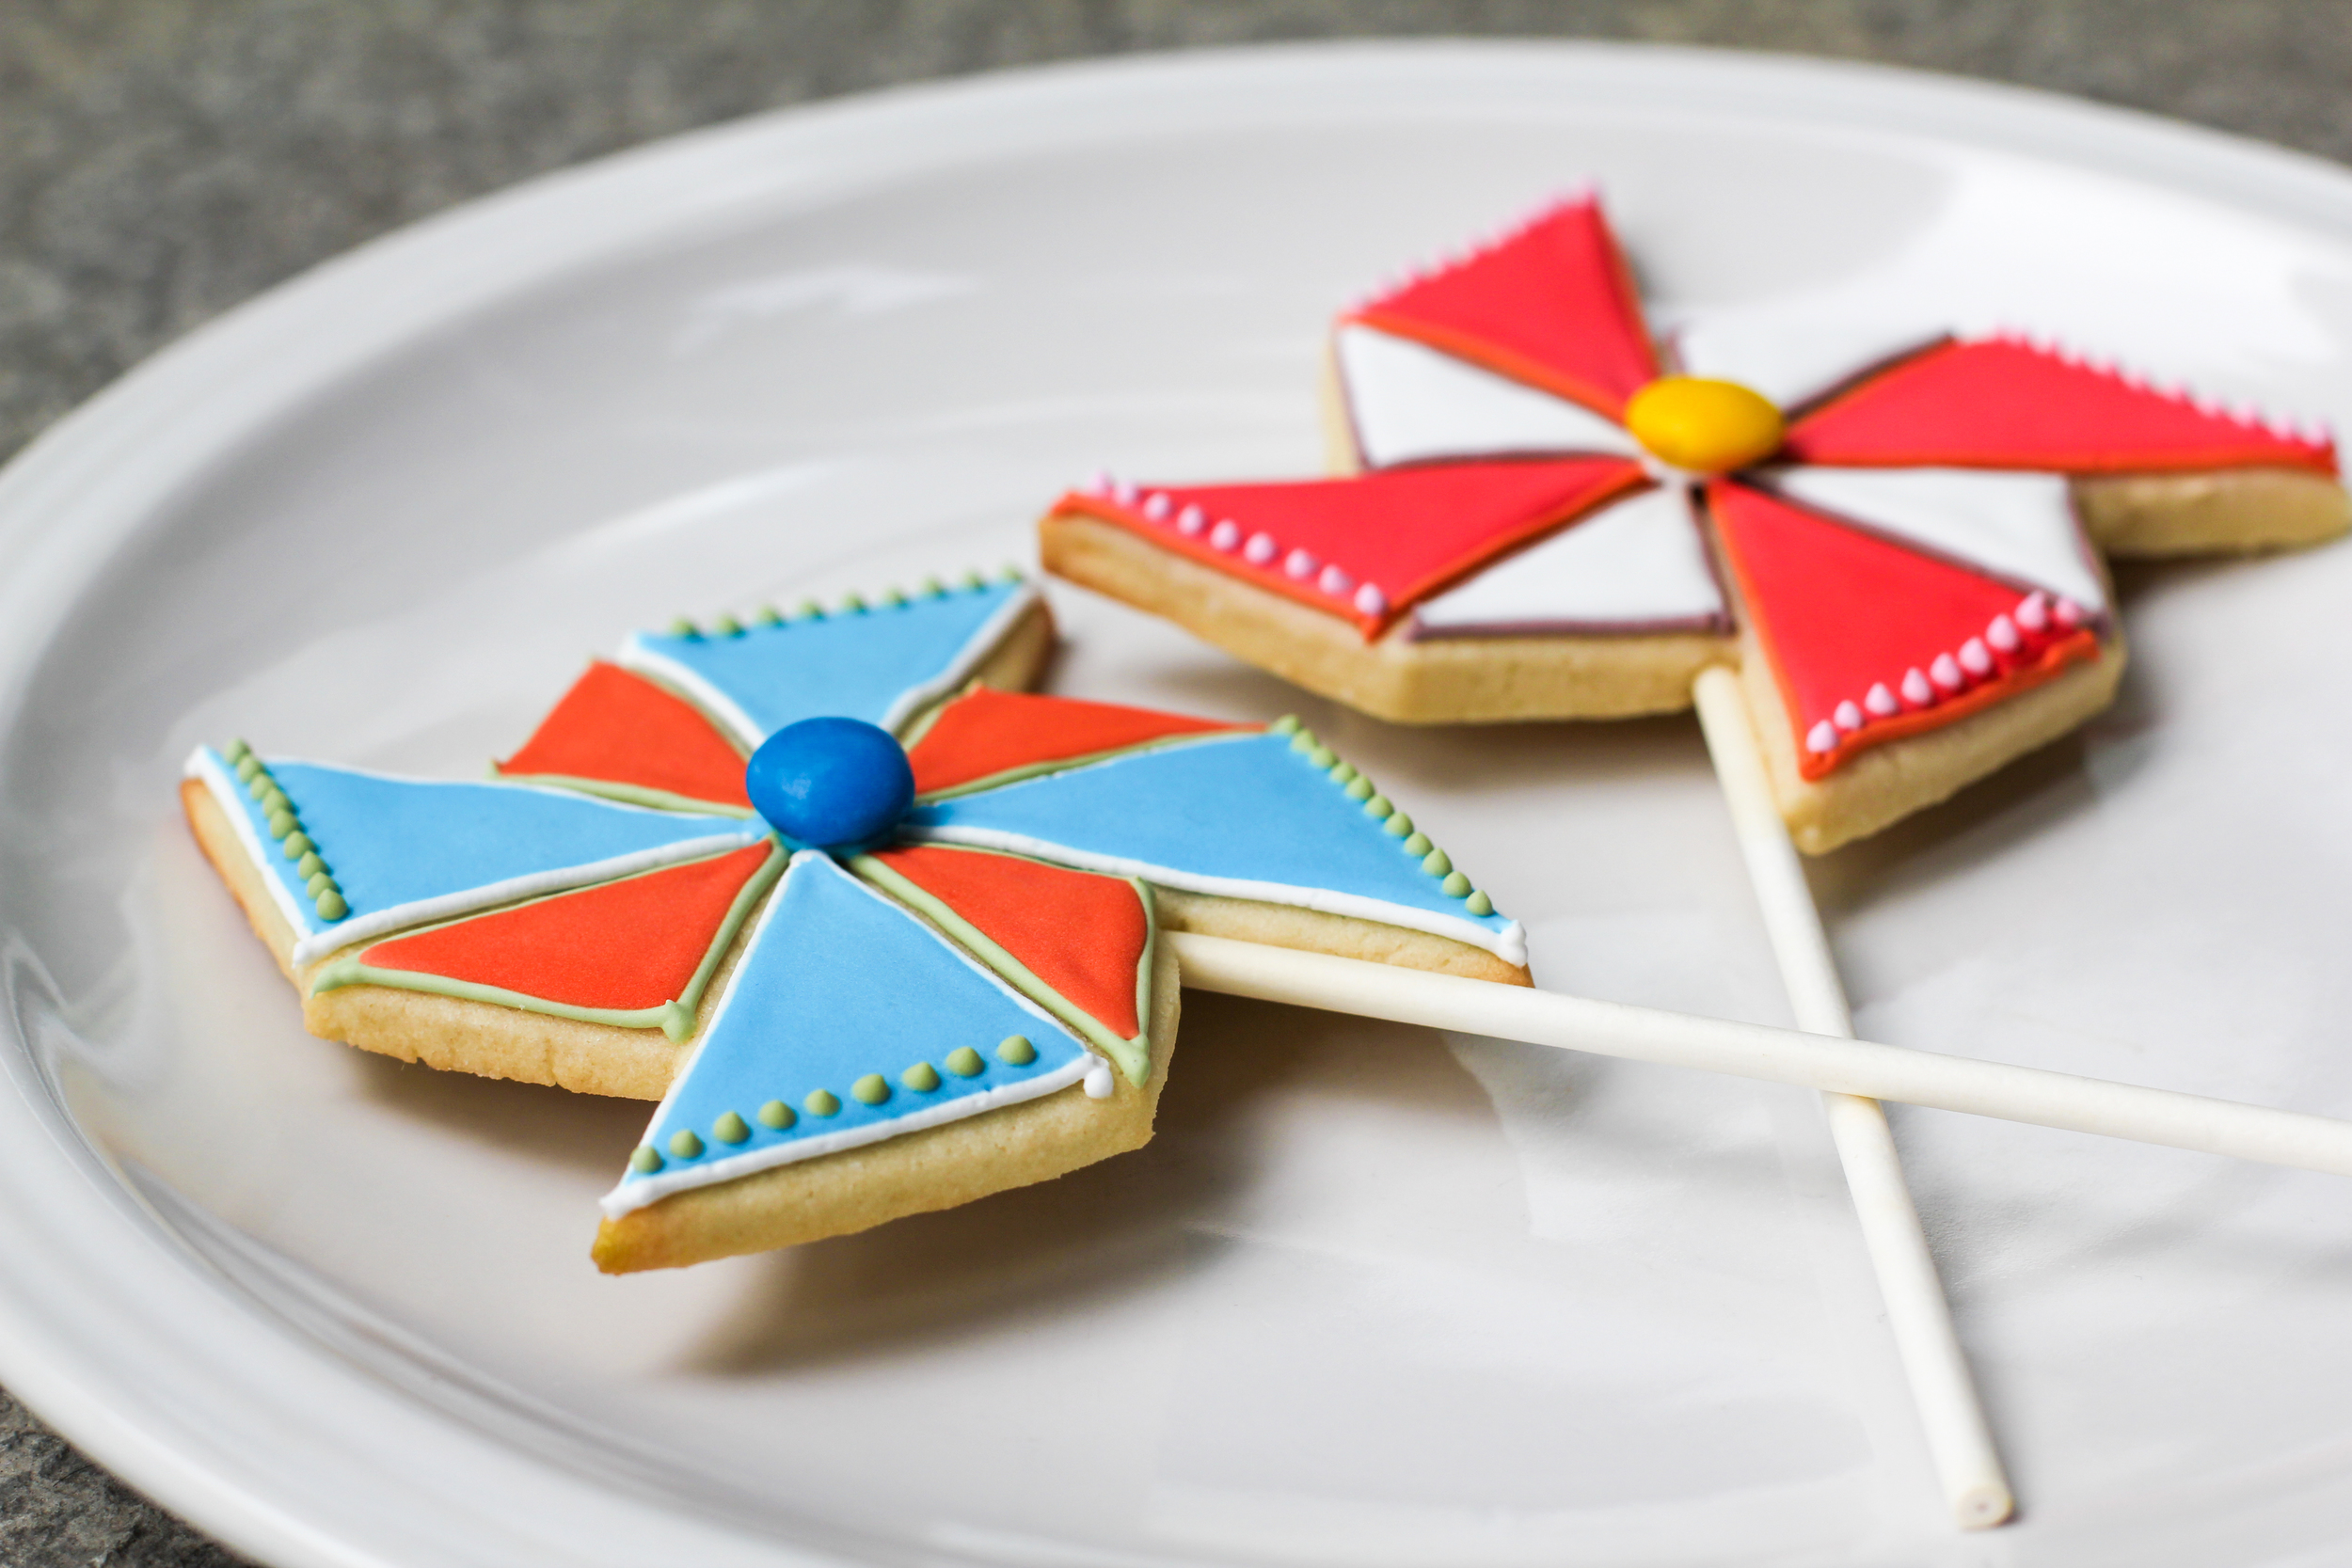 pinwheel-shaped-sugar-cookie-3.jpg